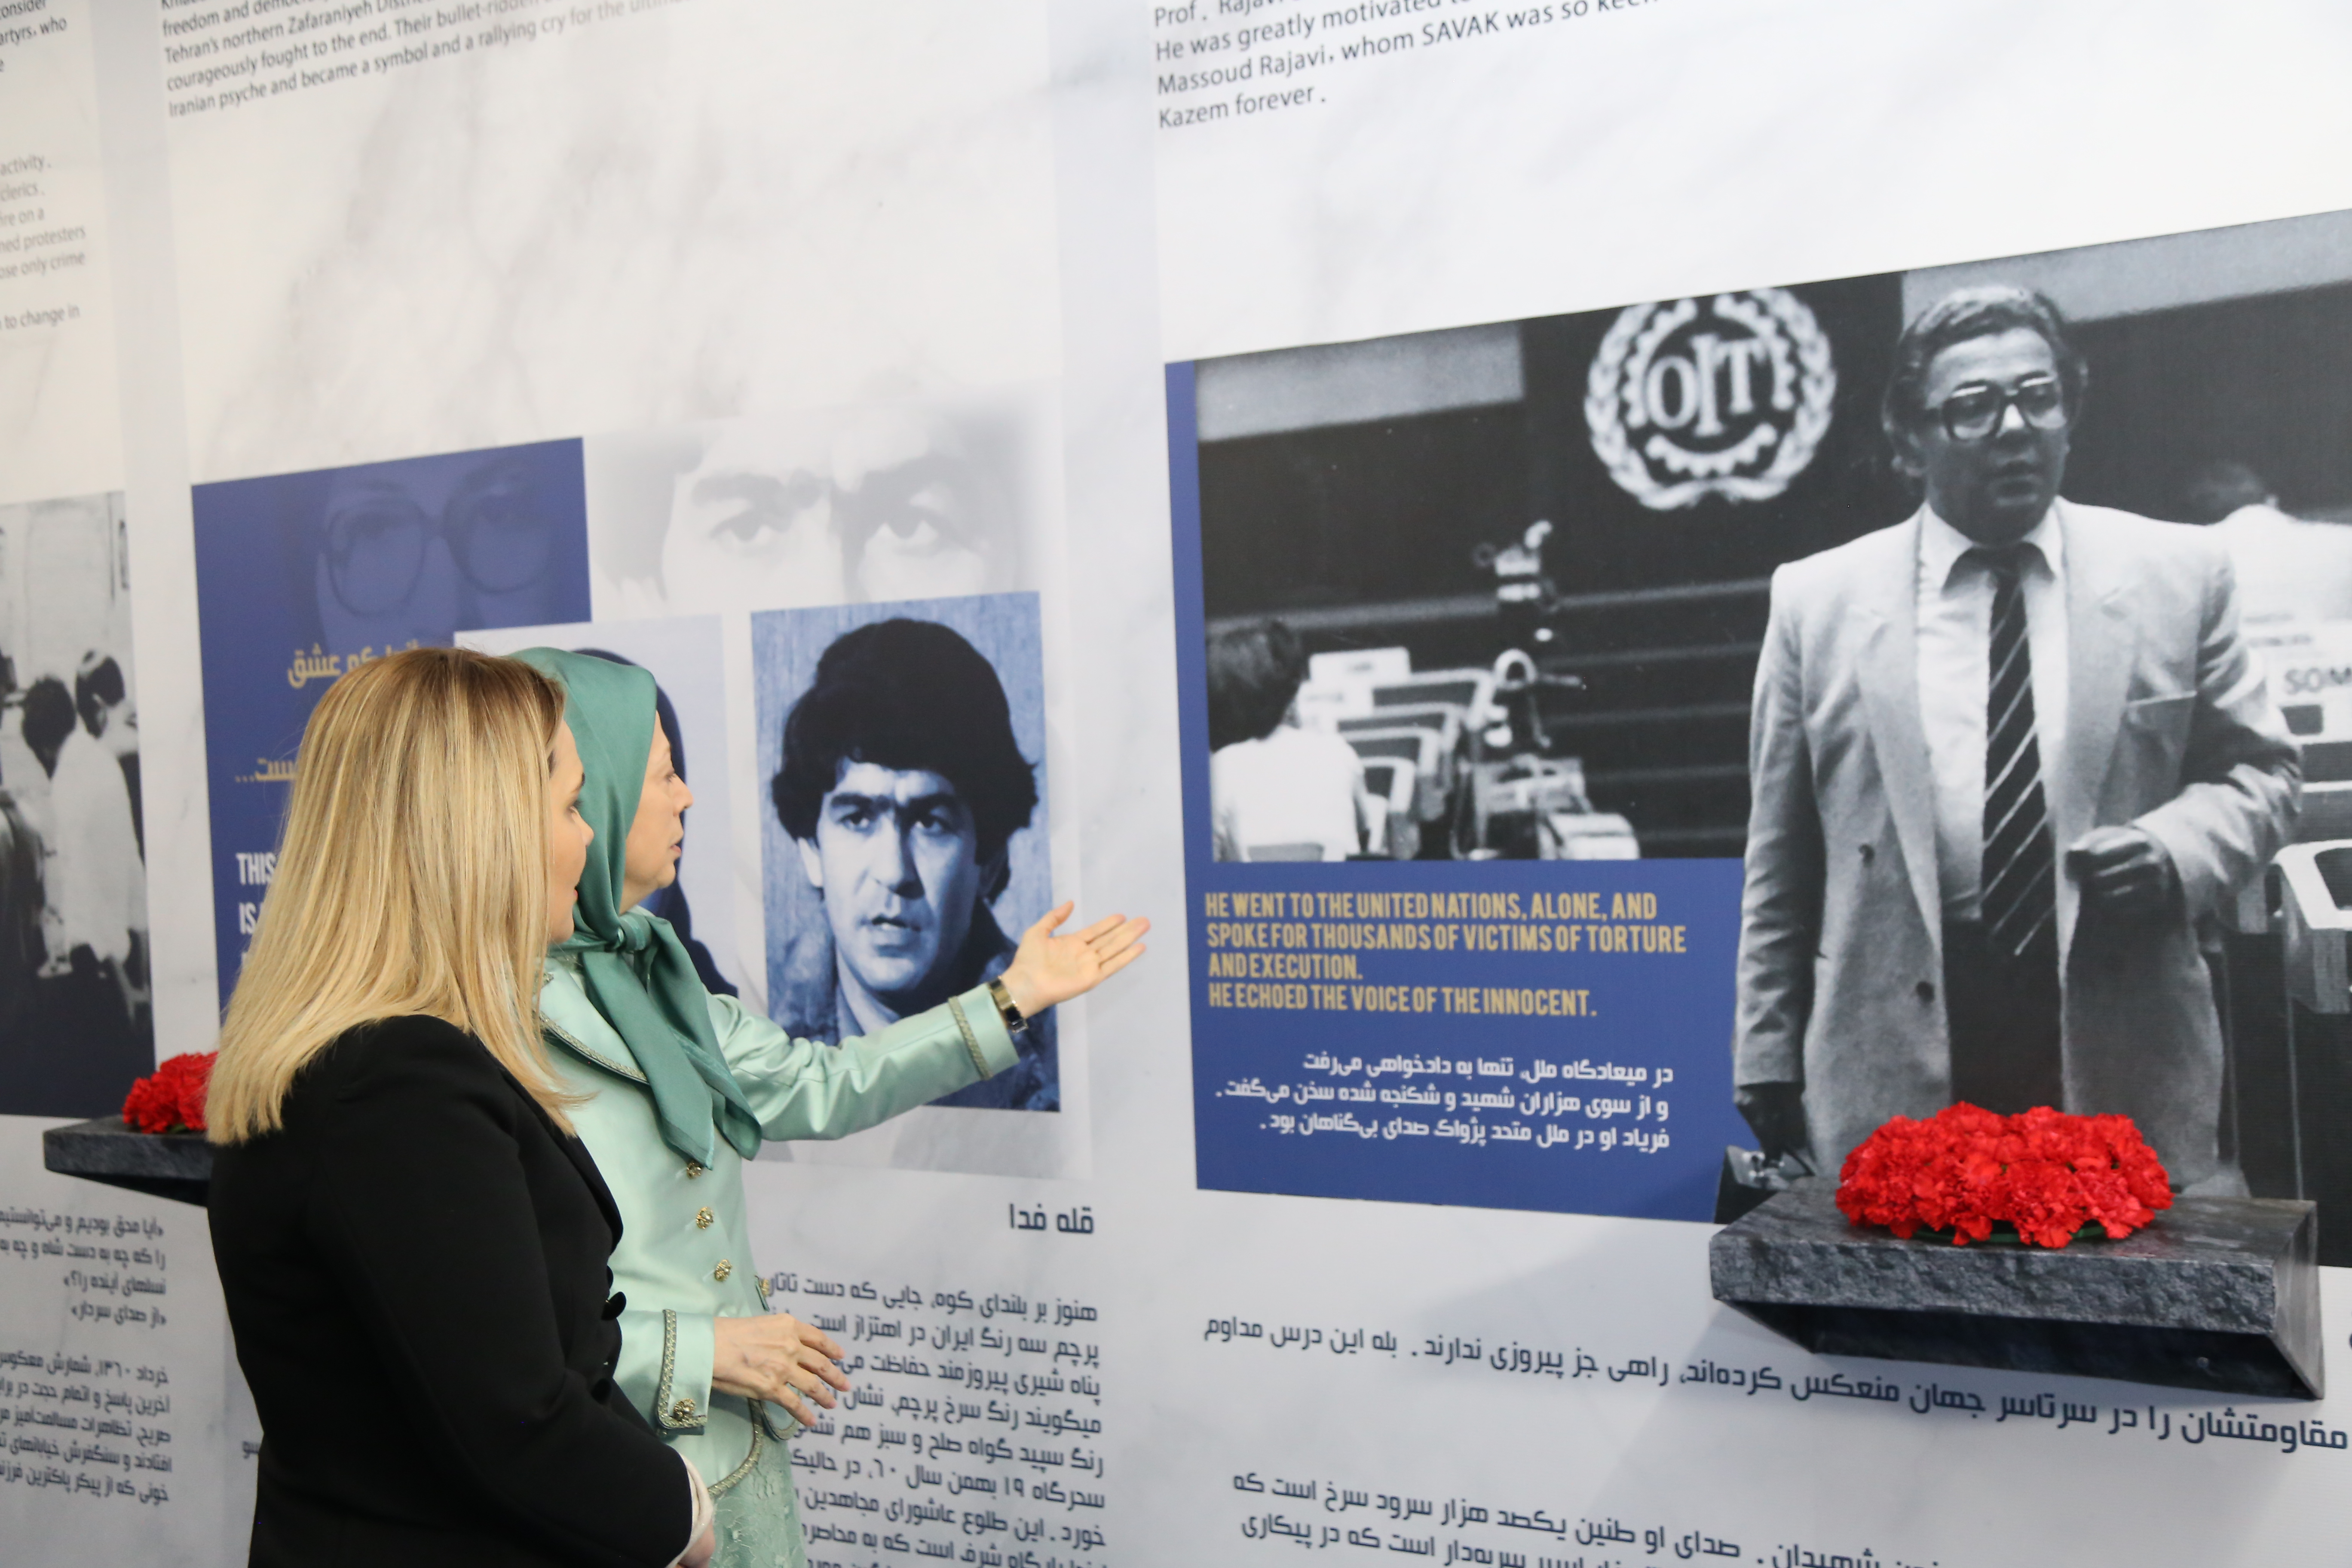 Ashraf-3, Albania, January 29, 2020 - Mrs. Monika Kryemadhi, Chairwoman of the Socialist Movement for Integration Party, and Mrs. Maryam Rajavi, the President-elect of the National Council of Resistance of Iran (NCRI), visiting the Museum of 120 Years of Struggle for Freedom in Iran at Ashraf-3, home to thousands of members of the main Iranian opposition group, the Mujahedin-e Khalq (MEK).